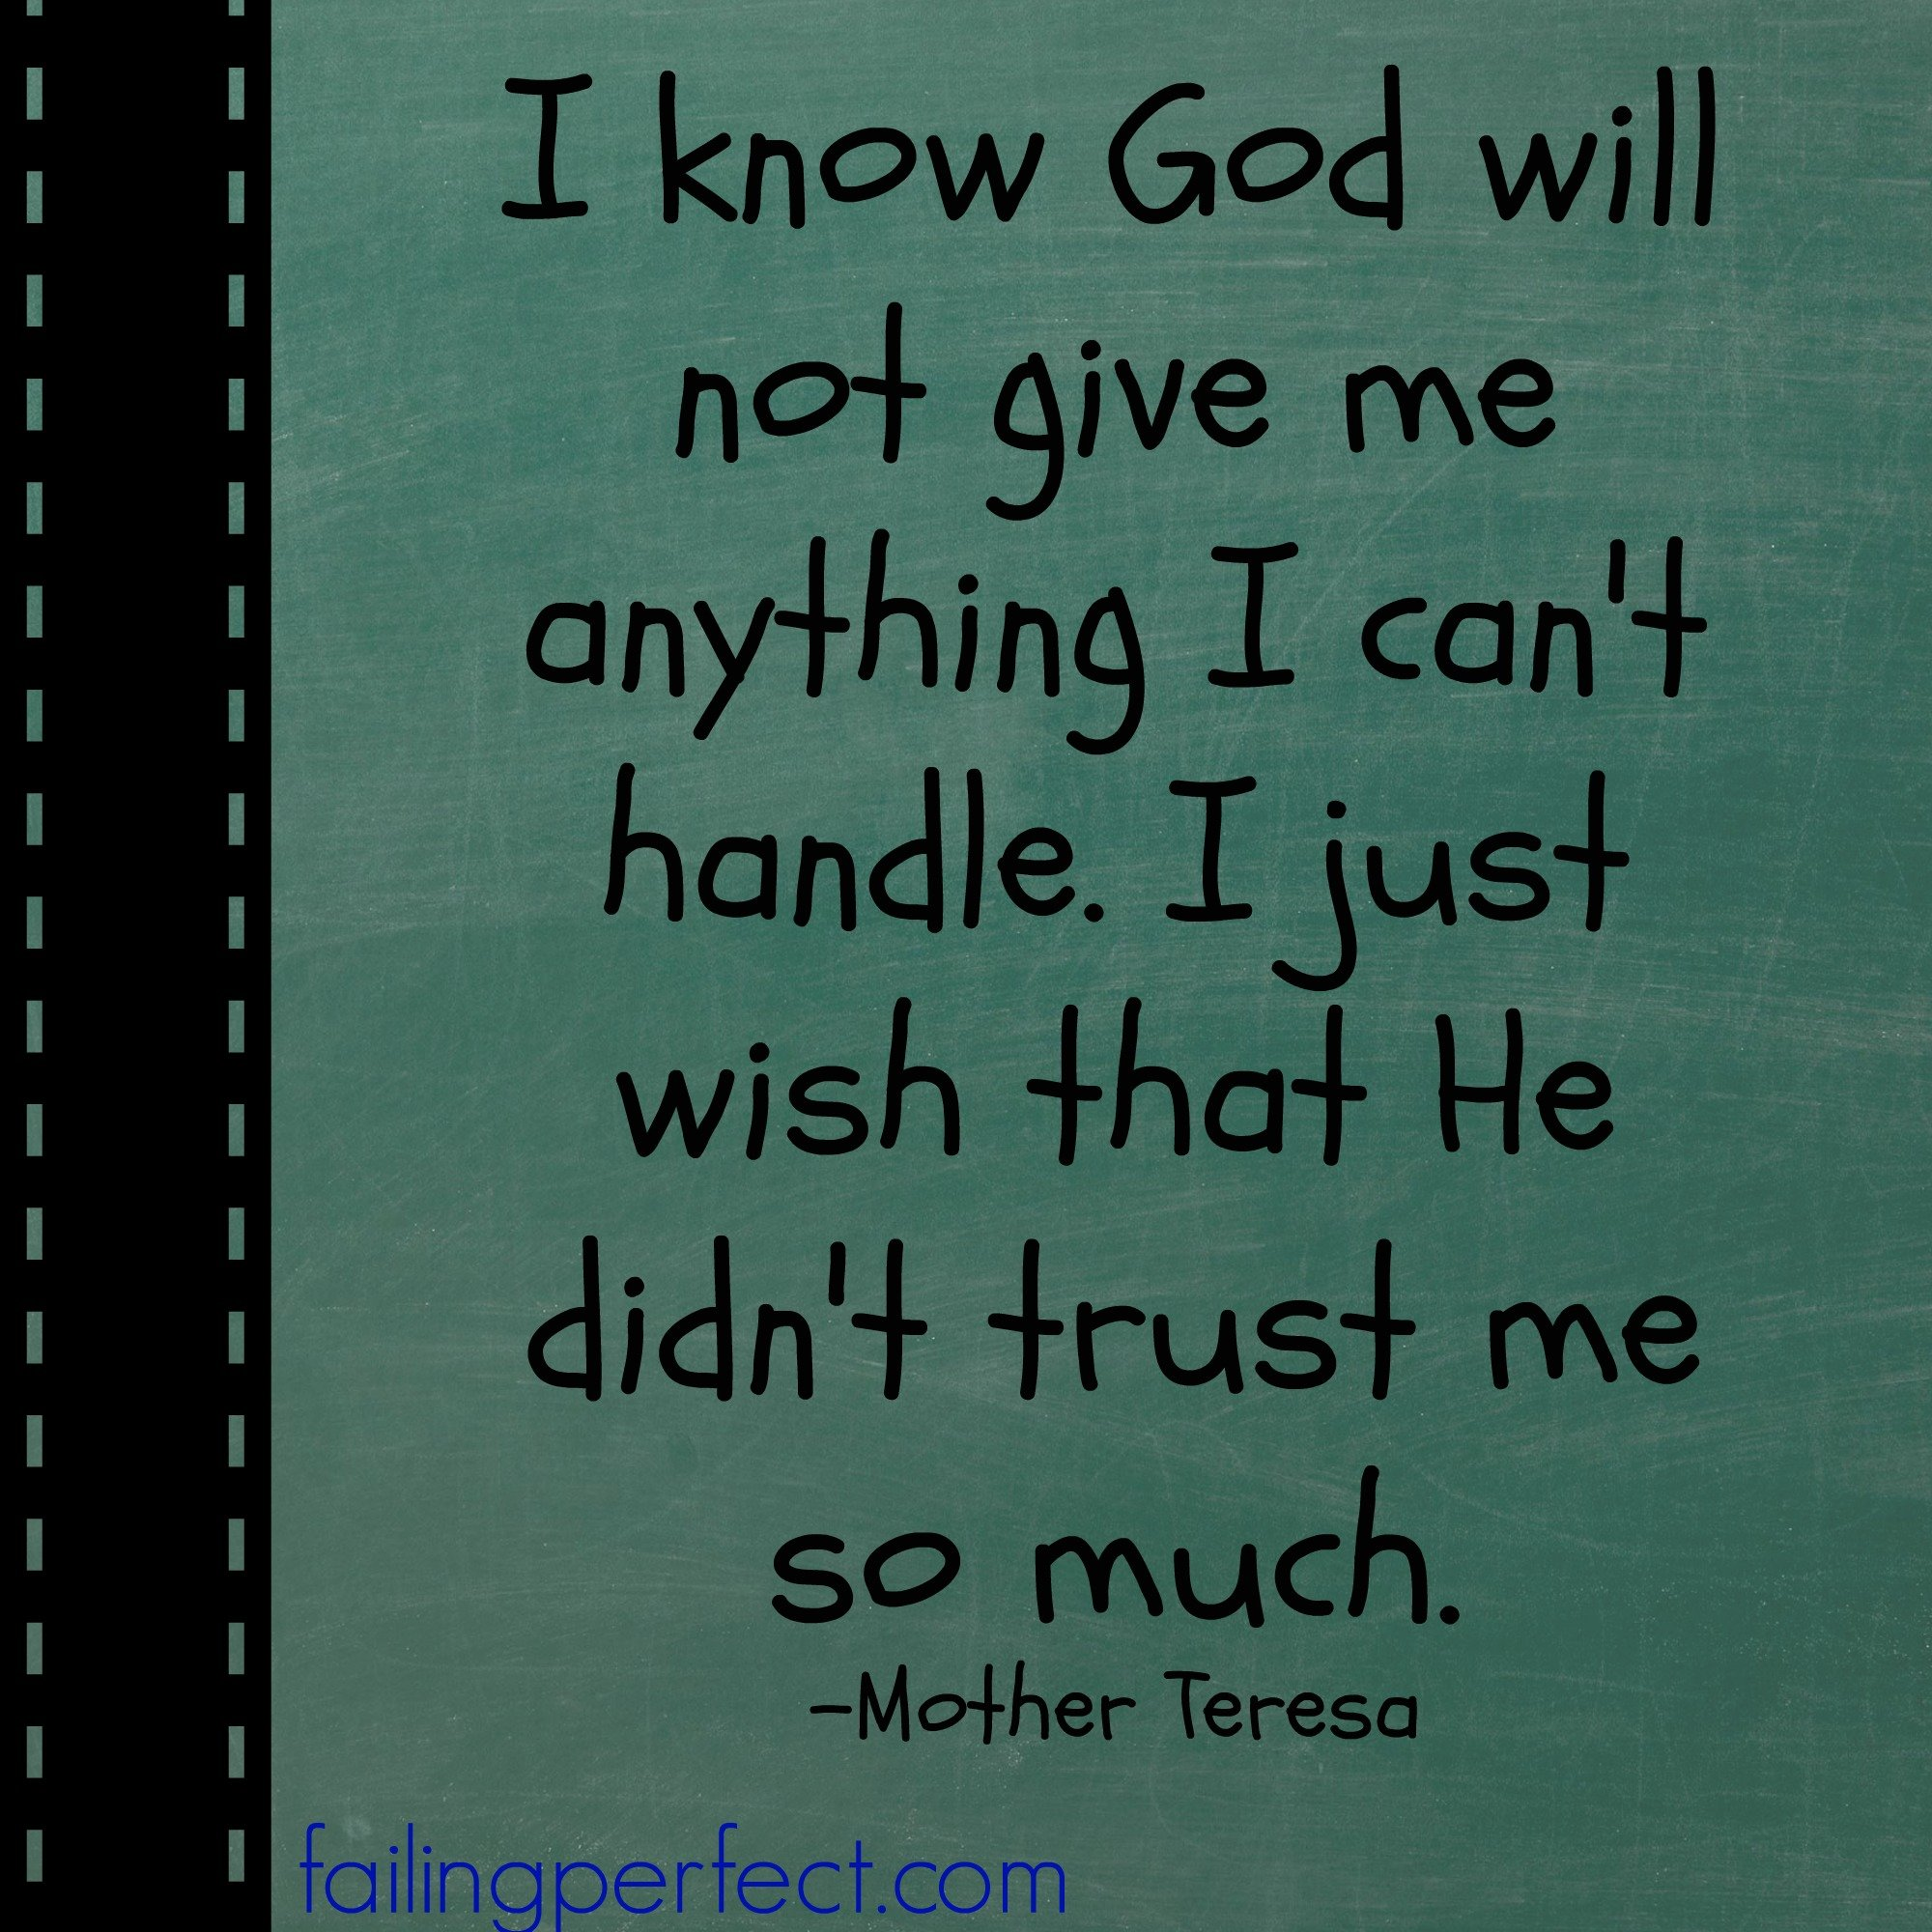 Quotes During Difficult Times: God During Difficult Times Quotes. QuotesGram